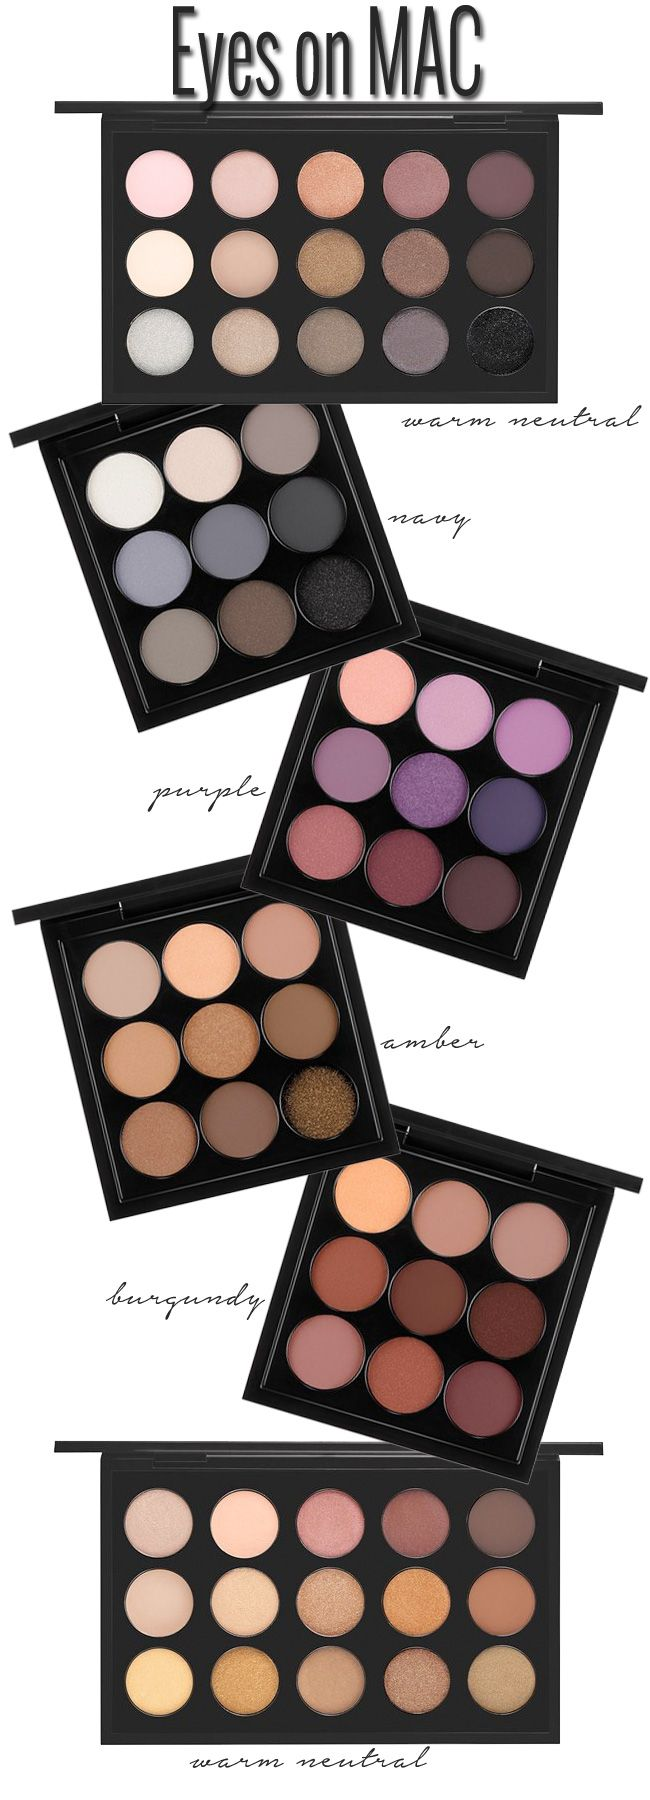 I only have one MAC pallet (the warm neutrals) but their eyeshadow is the BEST. Easily blended, highly pigmented & not horrible price wise! #MAC # Makeup